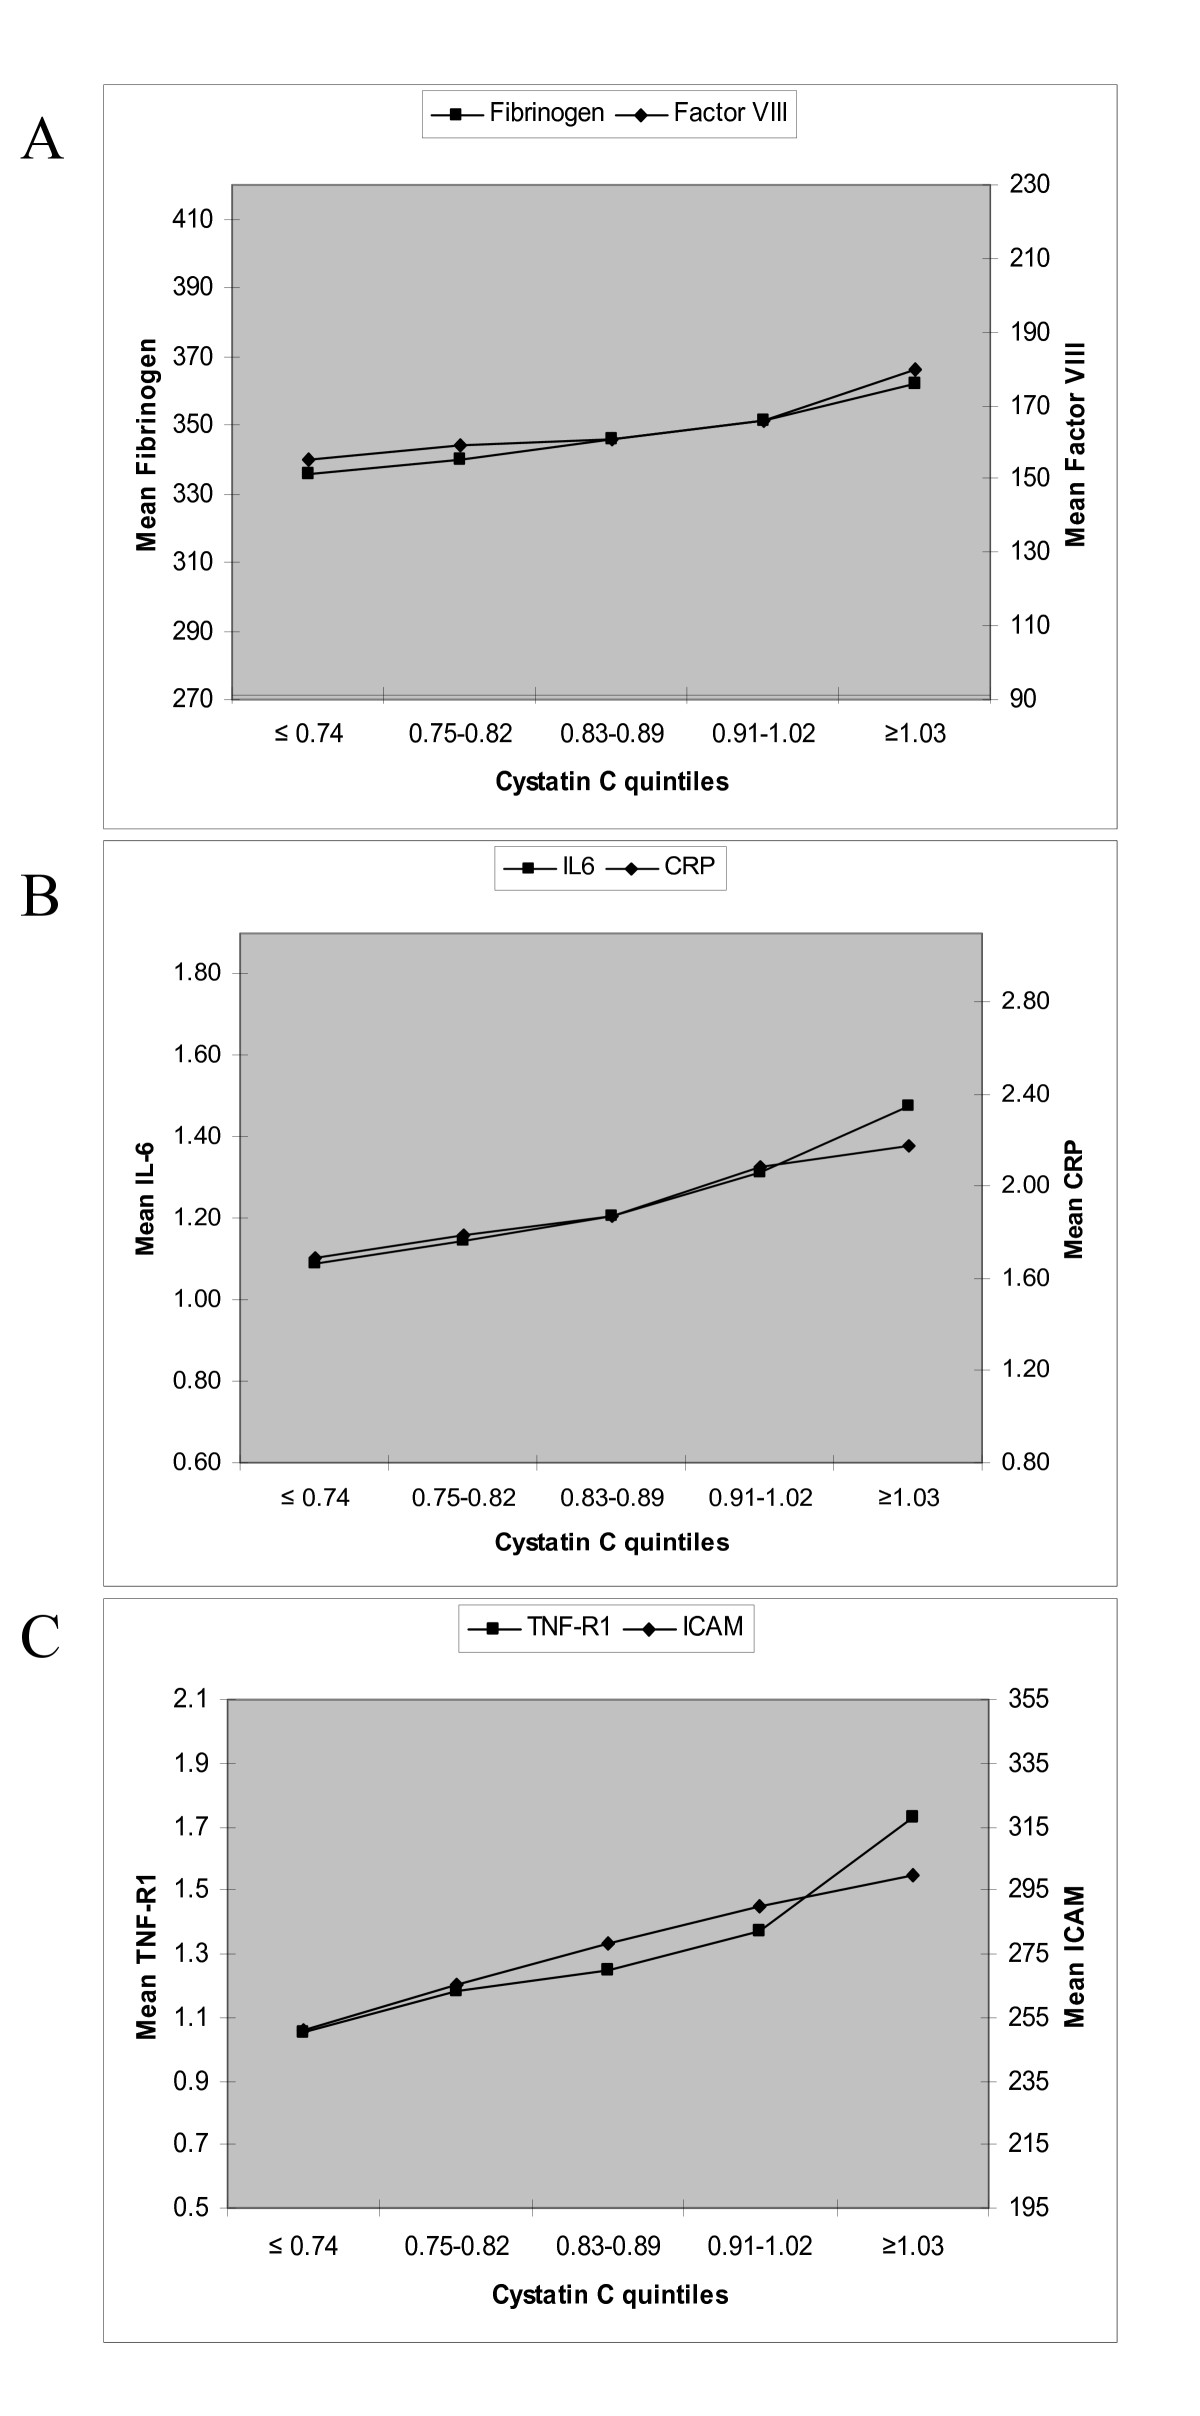 http://static-content.springer.com/image/art%3A10.1186%2F1471-2369-9-9/MediaObjects/12882_2008_Article_100_Fig1_HTML.jpg